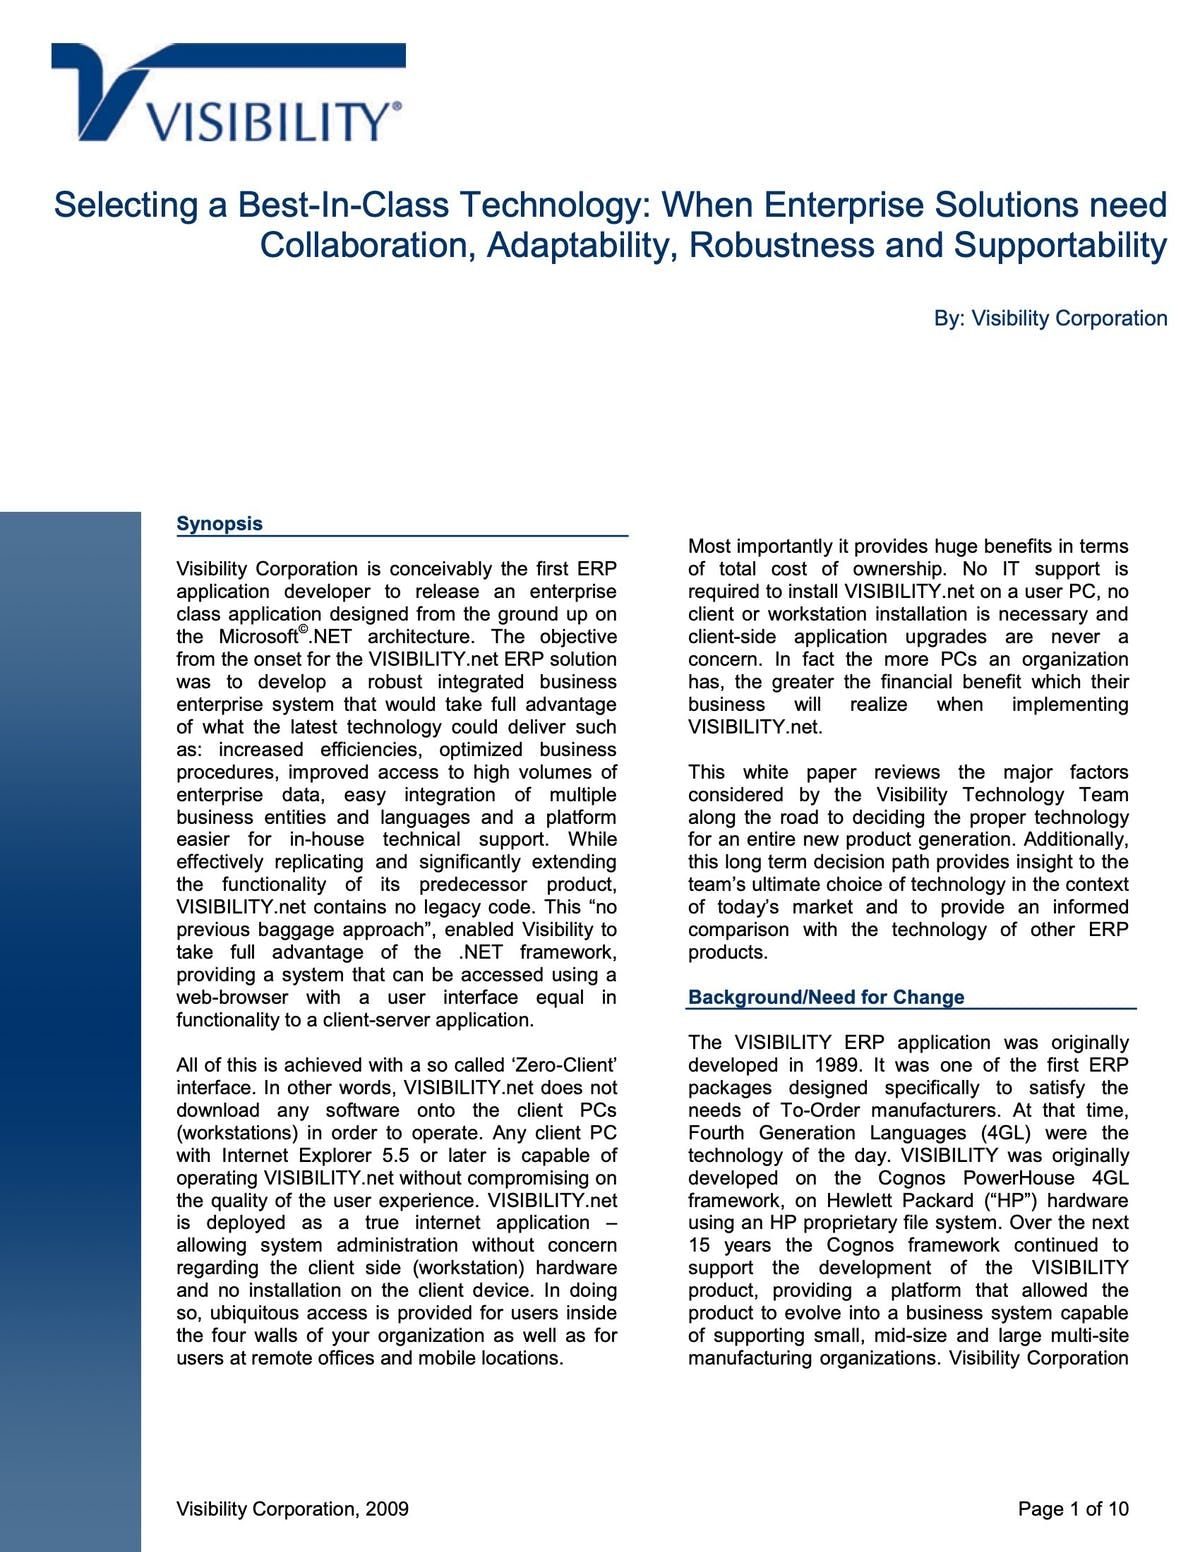 VISIBILITY.net White Paper - Selecting a Best In Class Technology